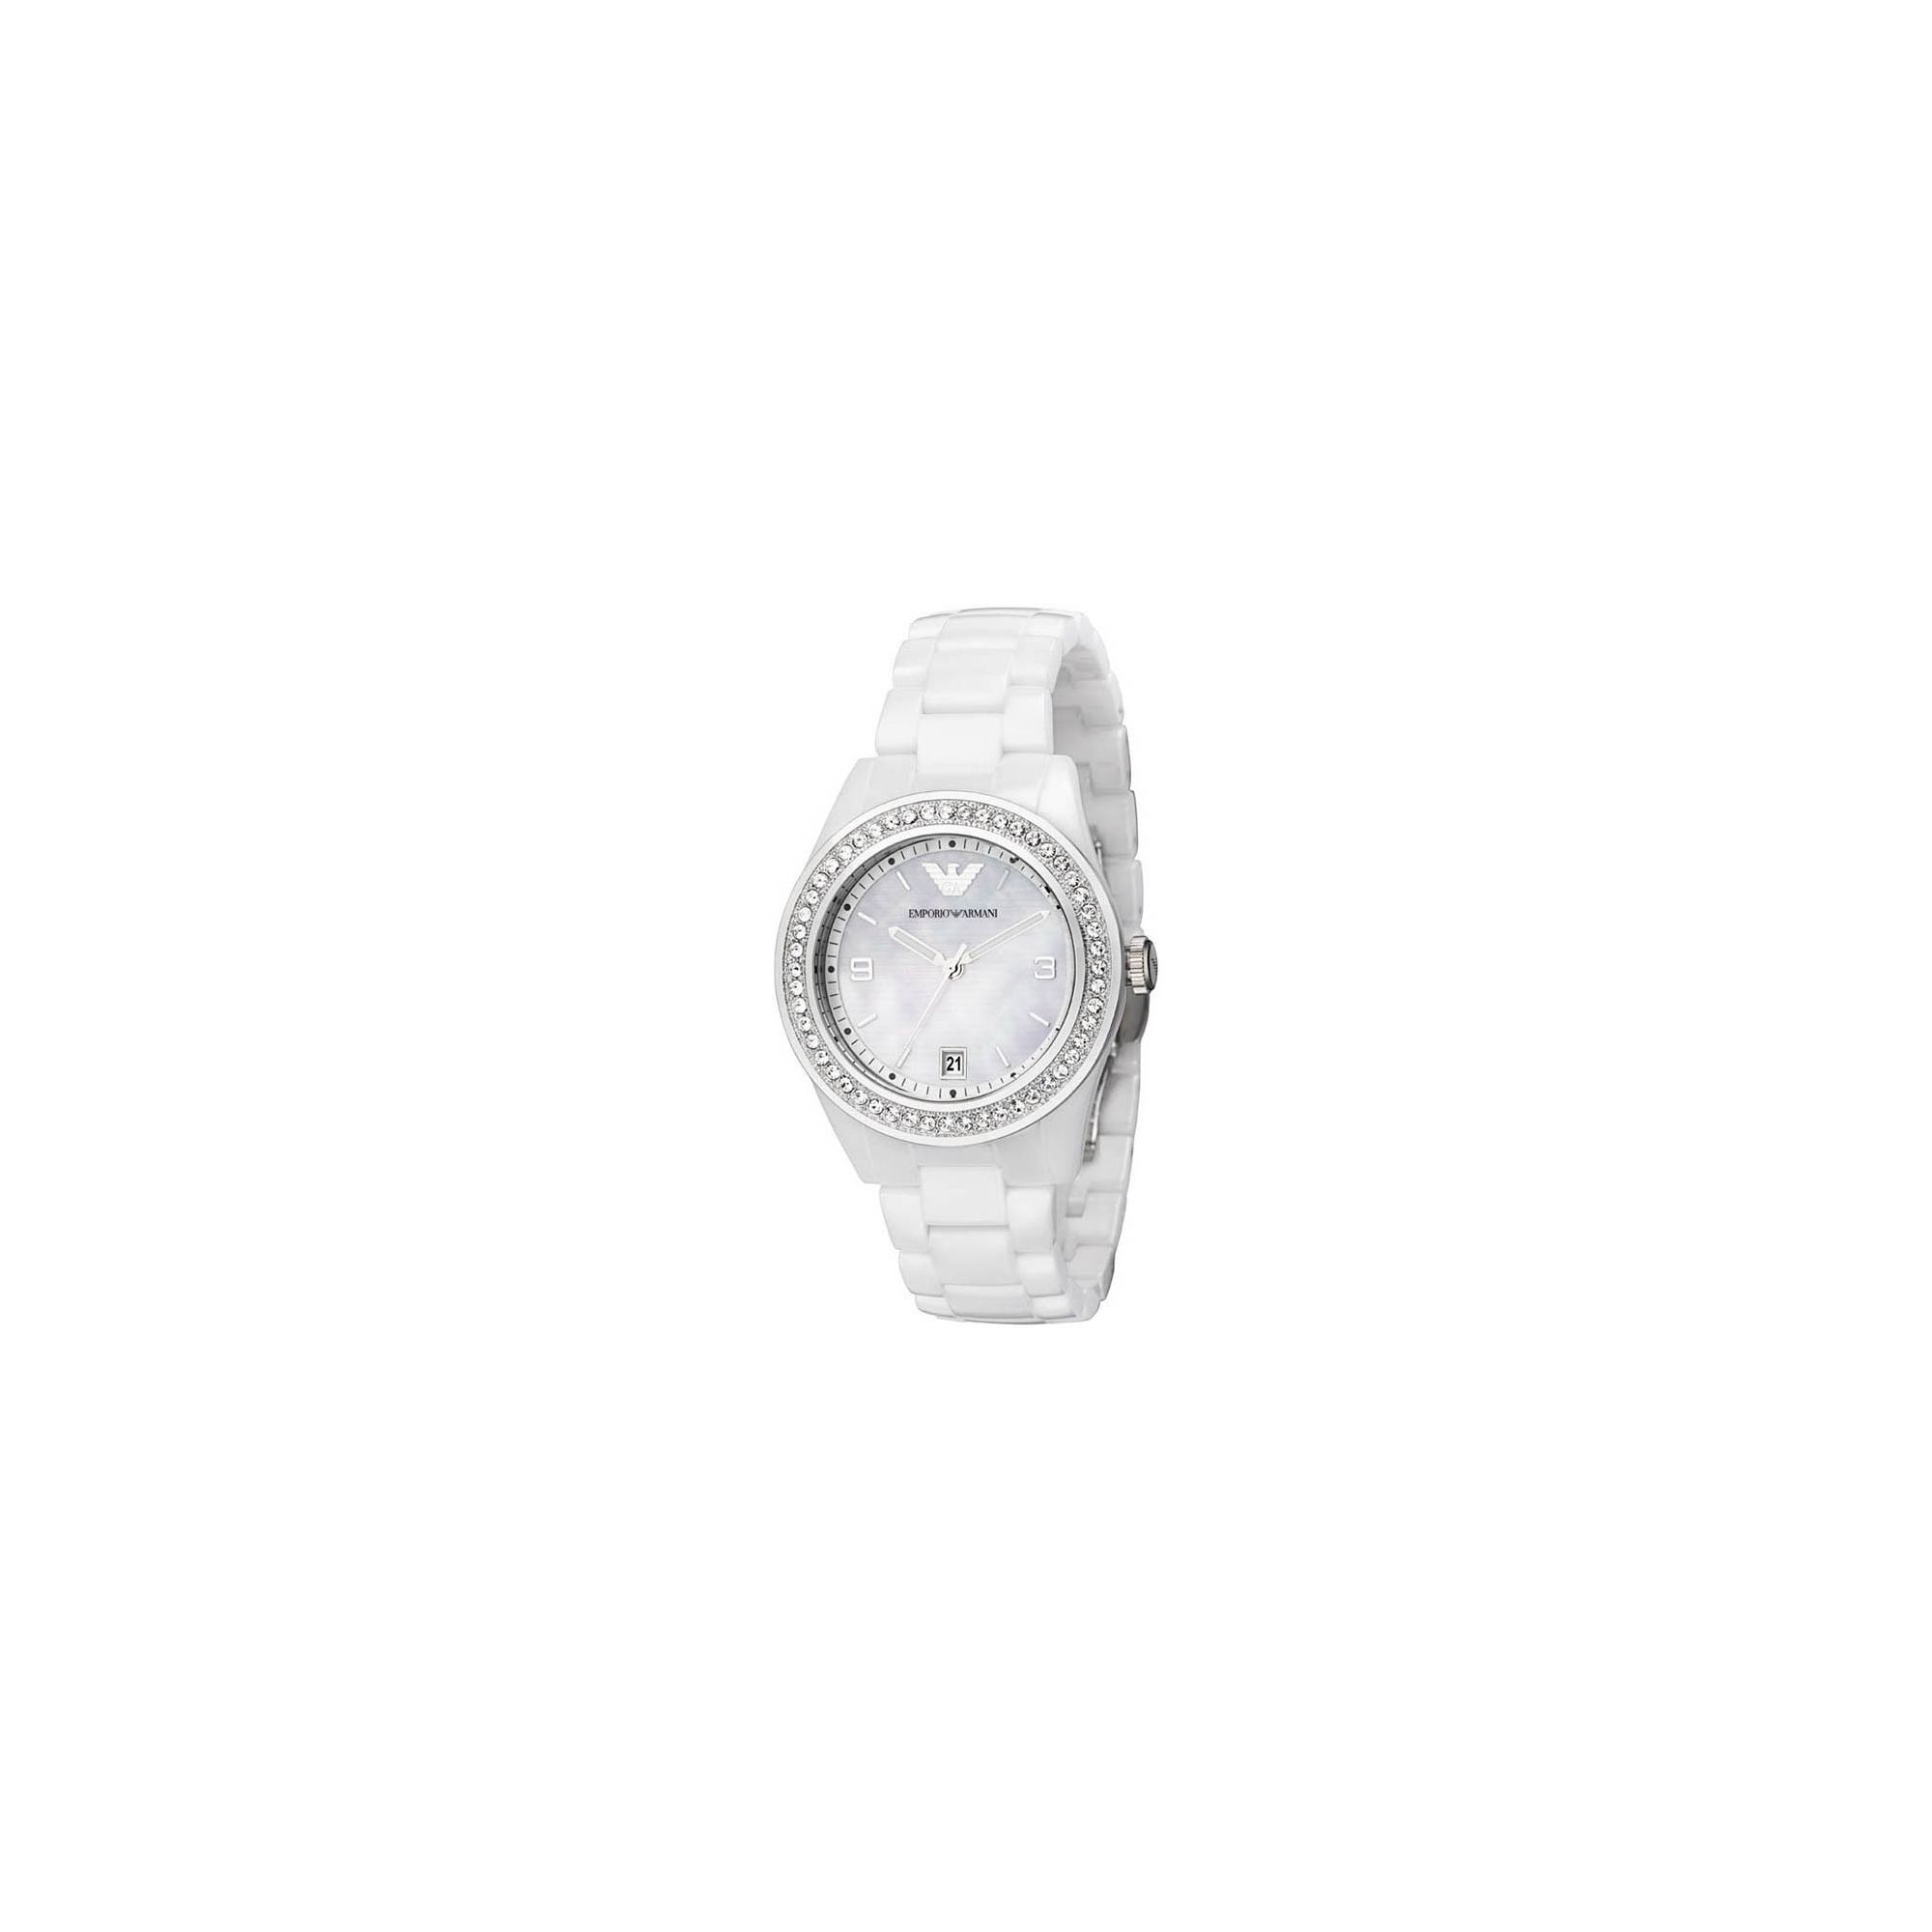 Emporio Armani White Ceramica Watch AR1426 at Tesco Direct